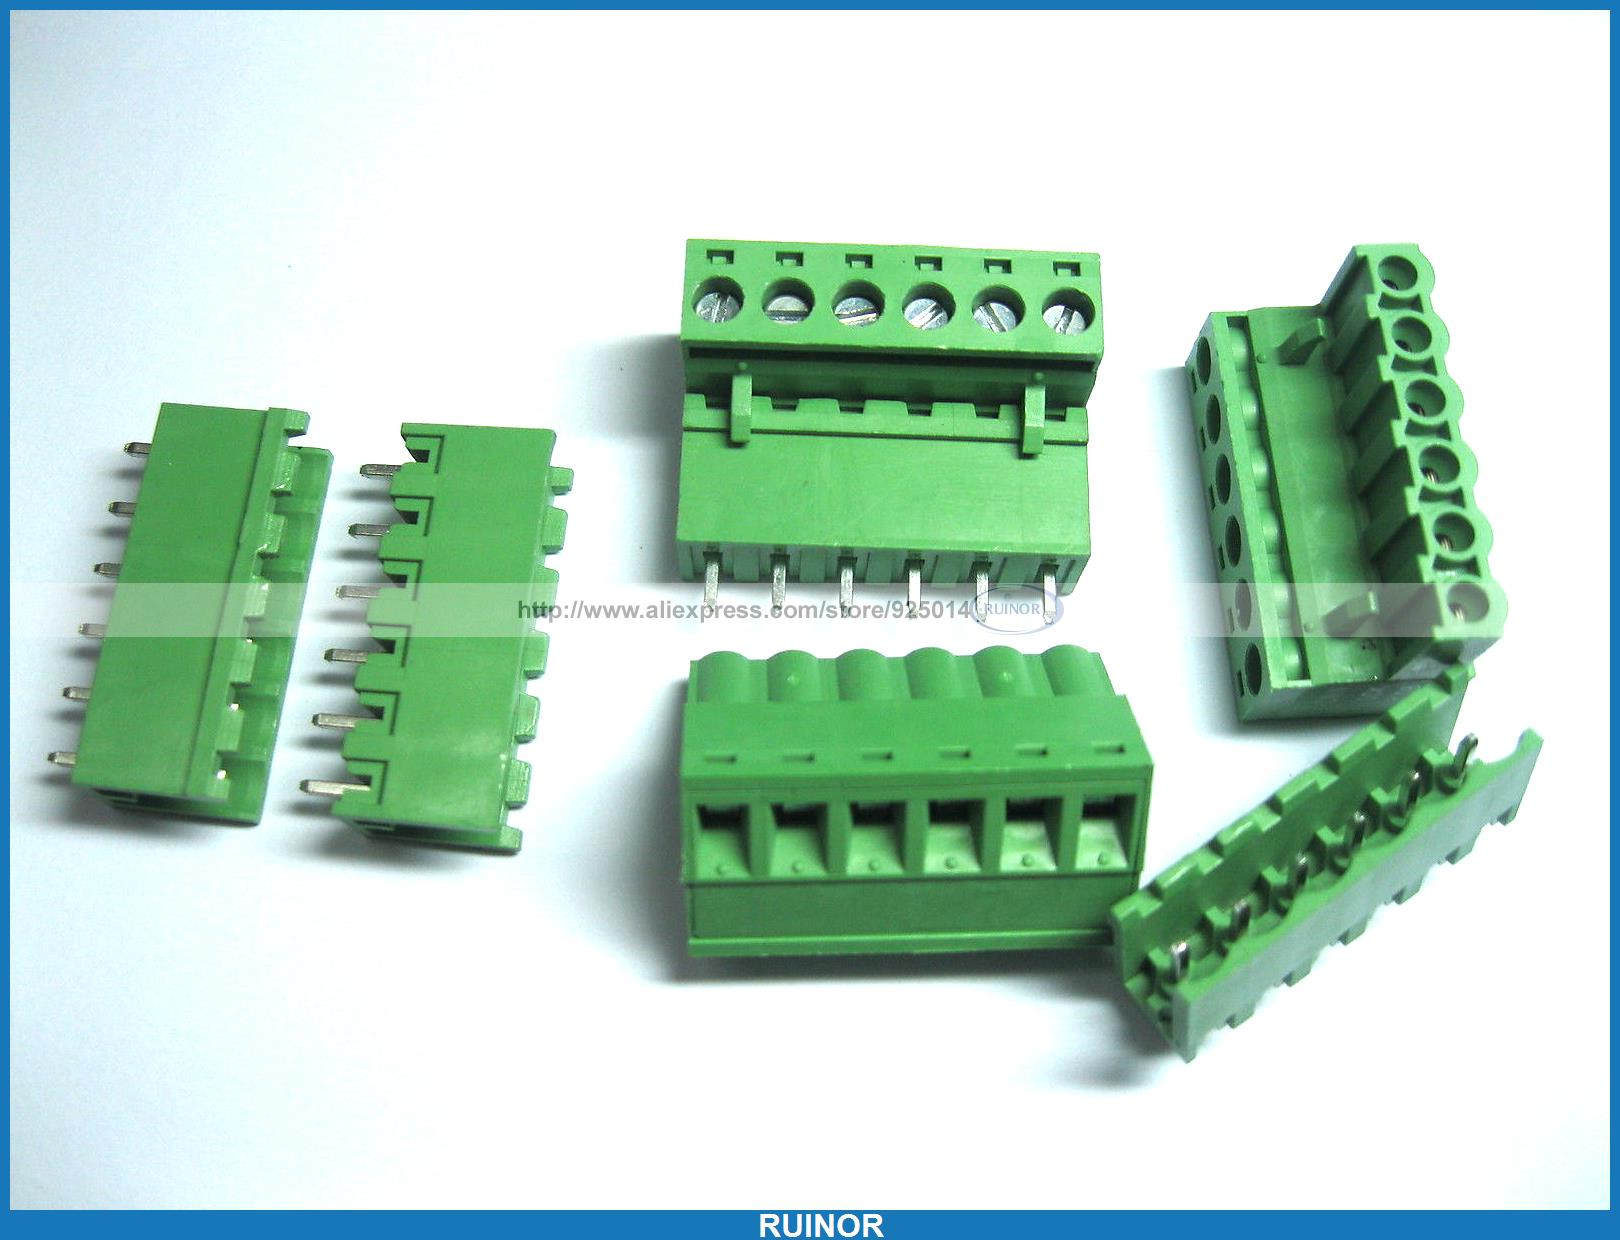 100 Pcs Green 6 Pin 5 08mm Screw Terminal Block Connector Pluggable Type 30 pcs 5 08mm angle 16 pin screw terminal block connector pluggable type green